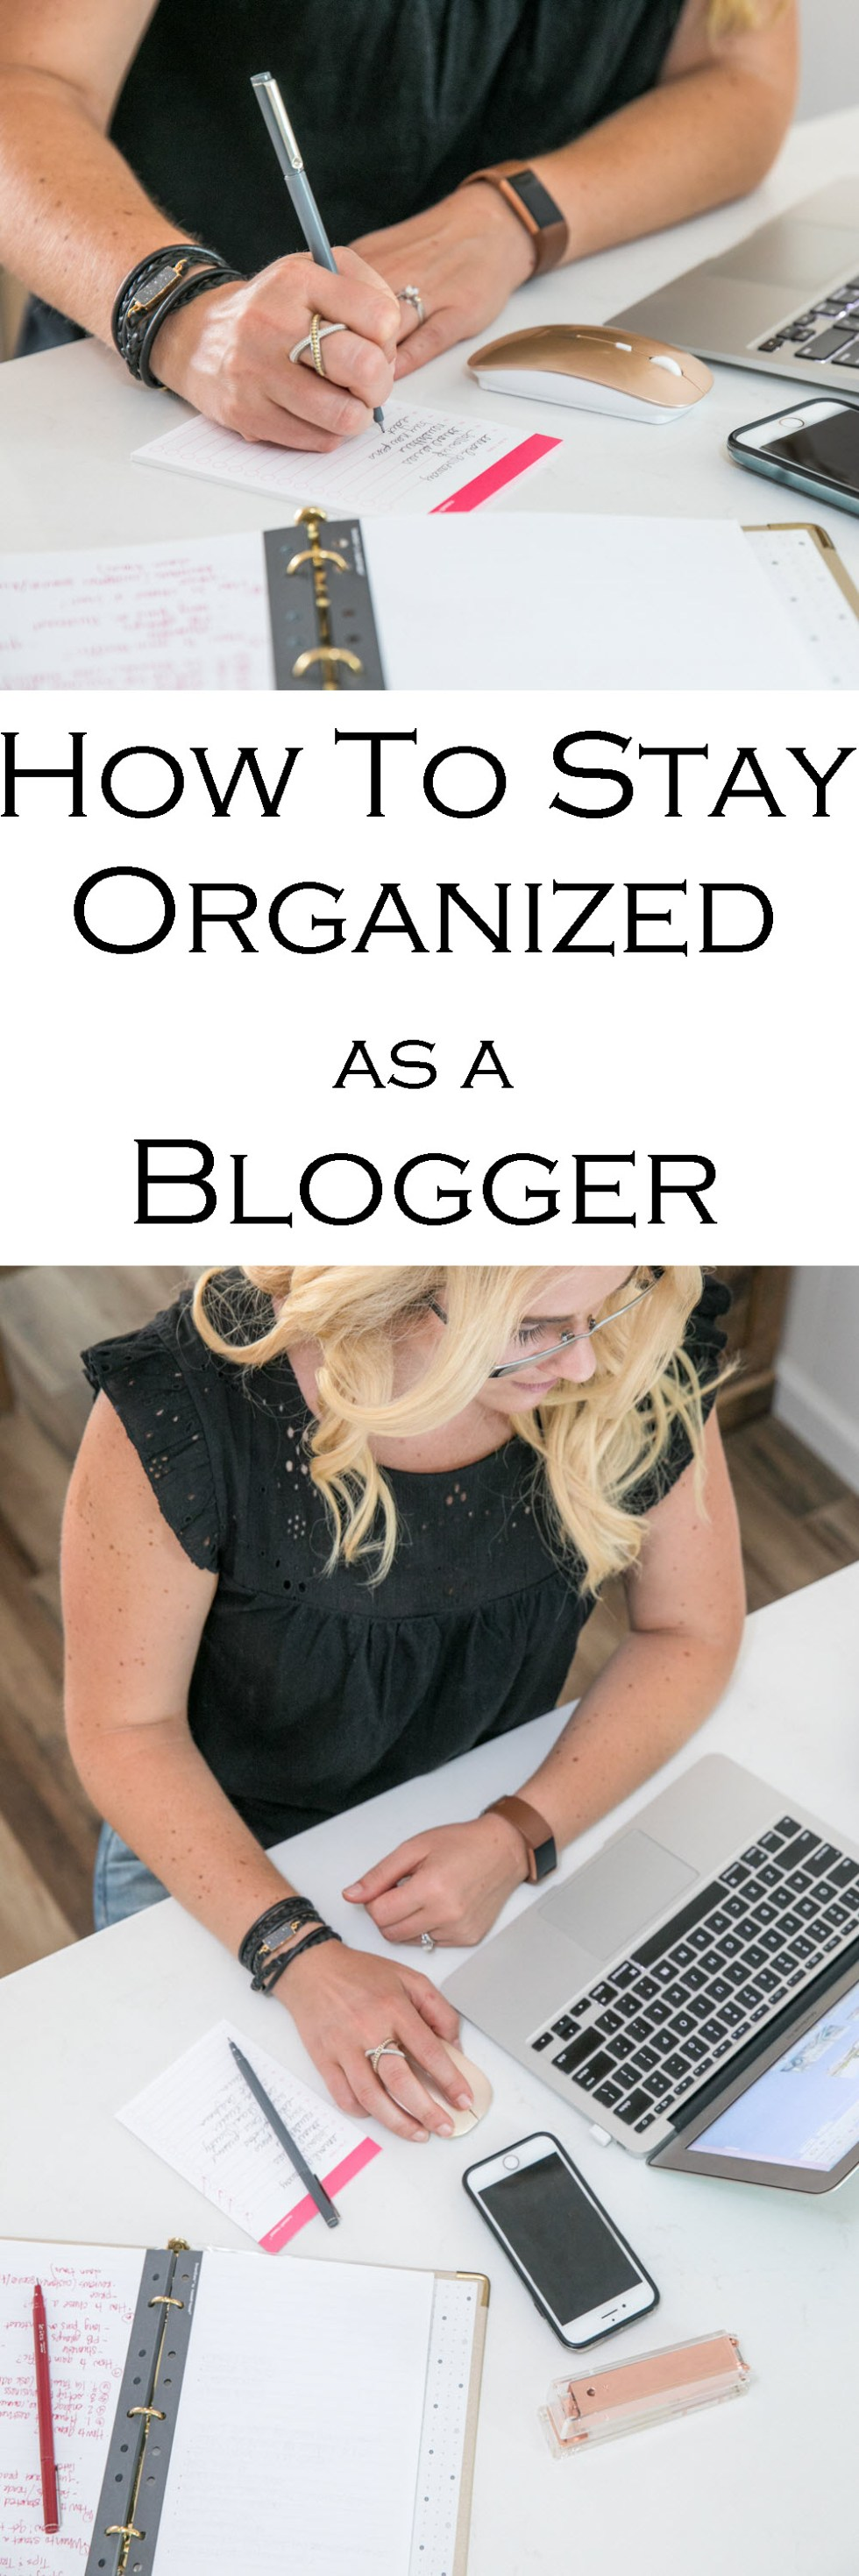 How to Stay Organized as a Blogger | Gold Binder Agenda - Russell + Hazel Mini Binder System Review